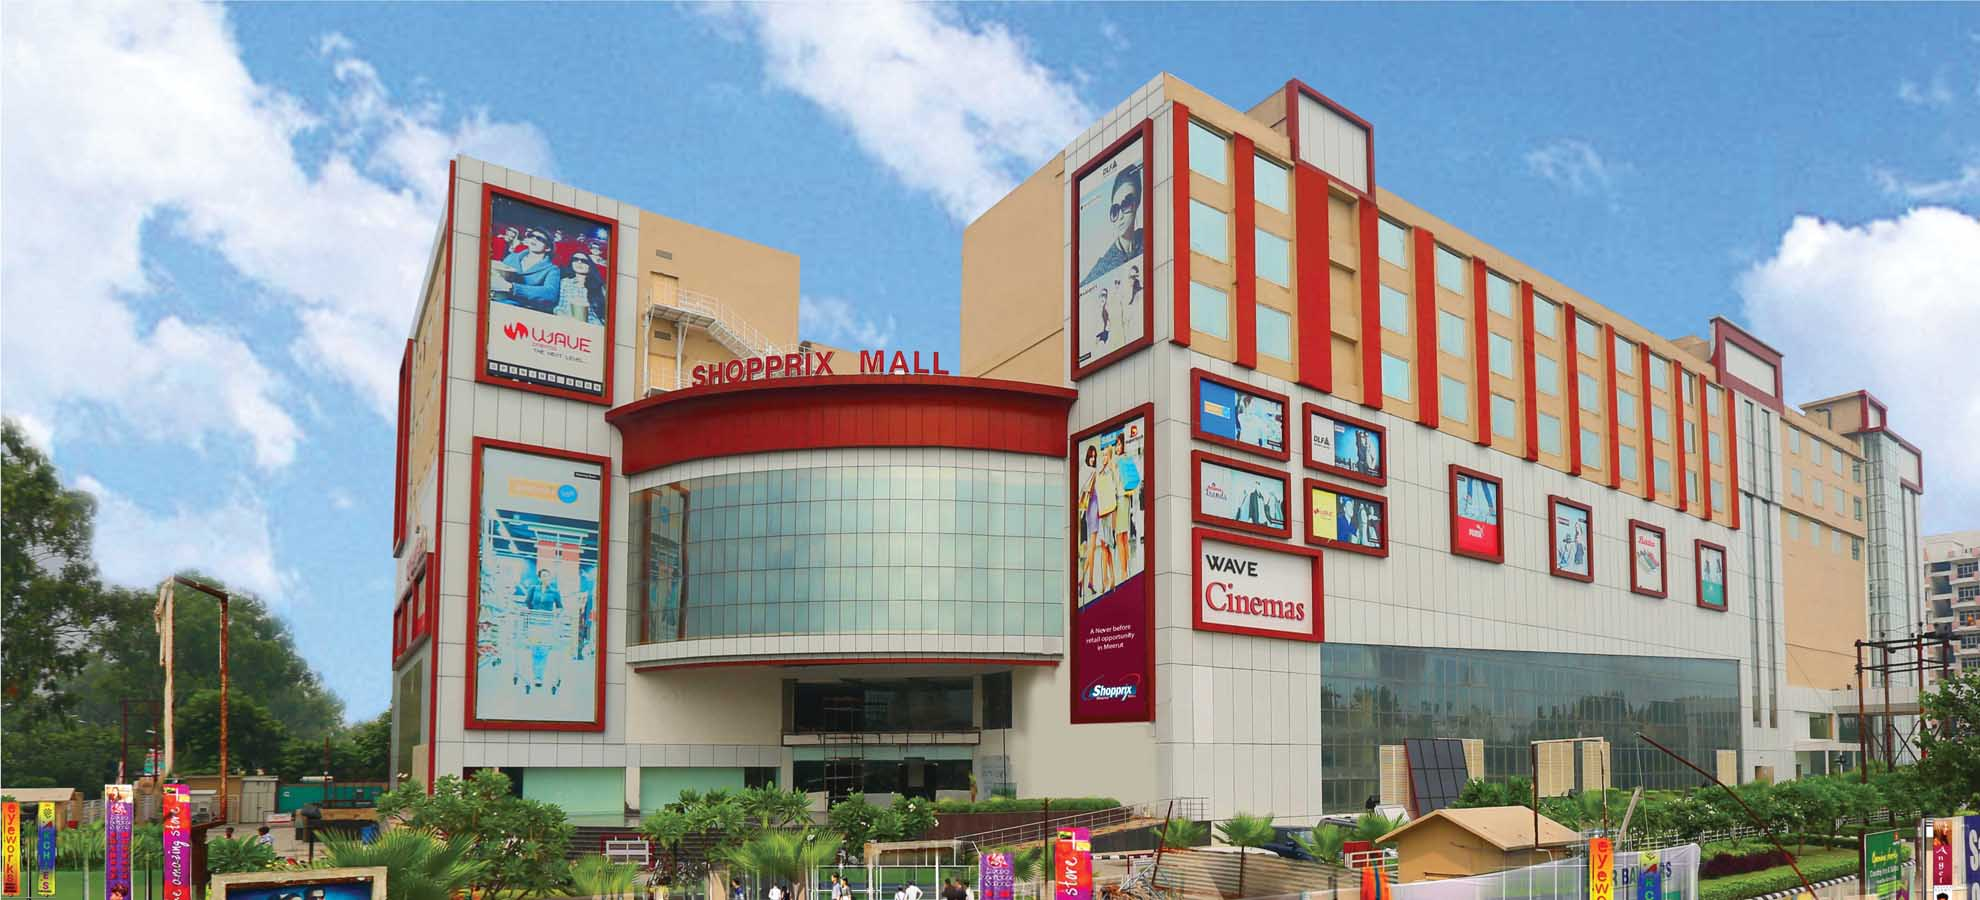 Shopprix Mall